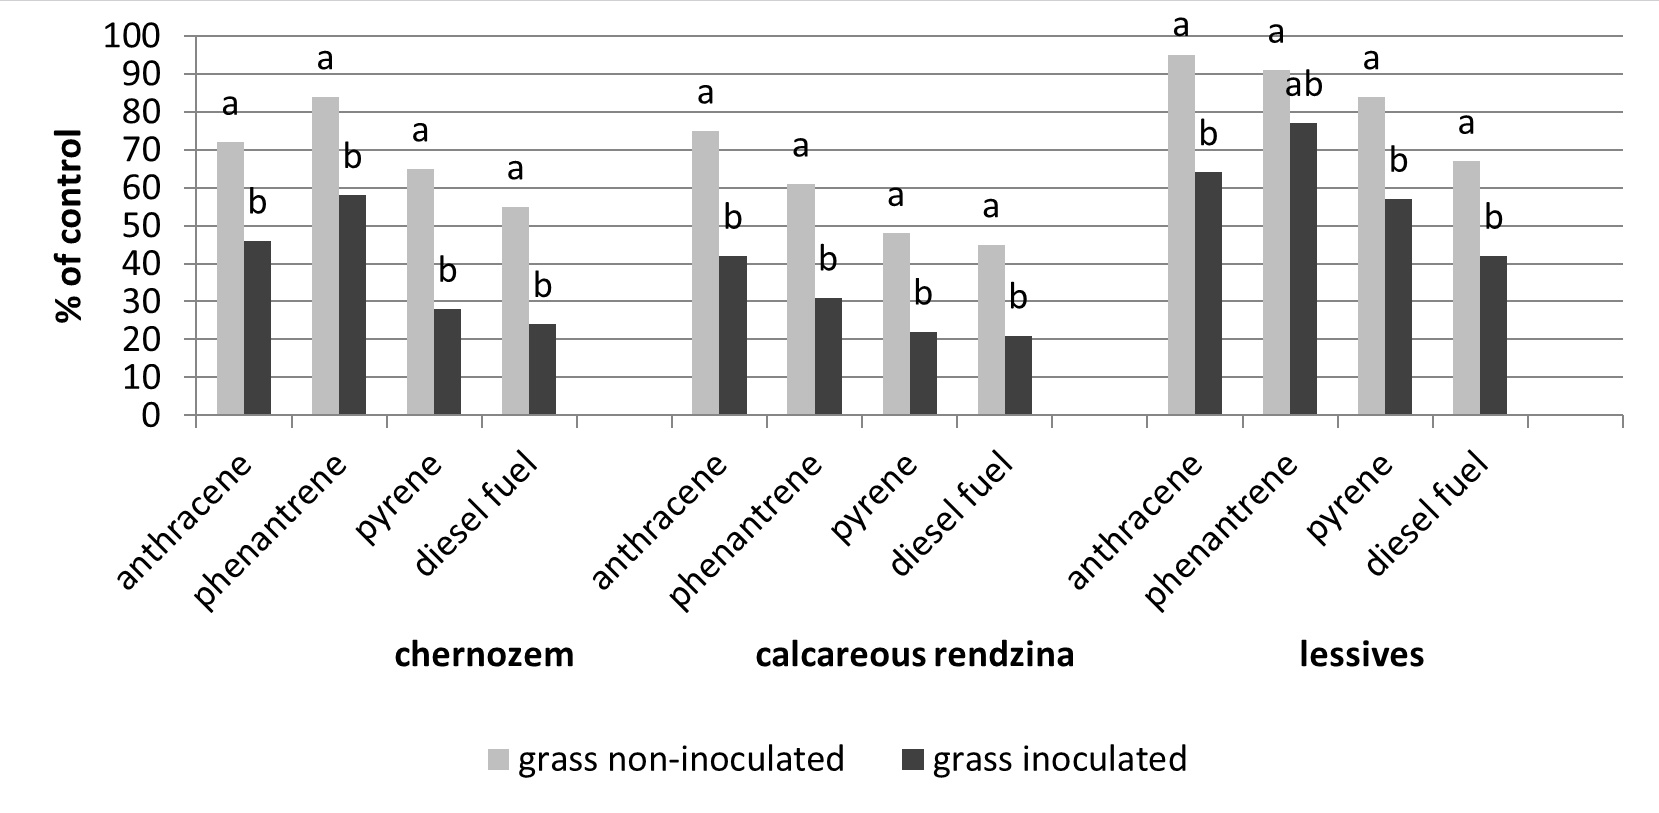 Phytoremediation of Polycyclic Aromatic Hydrocarbons in